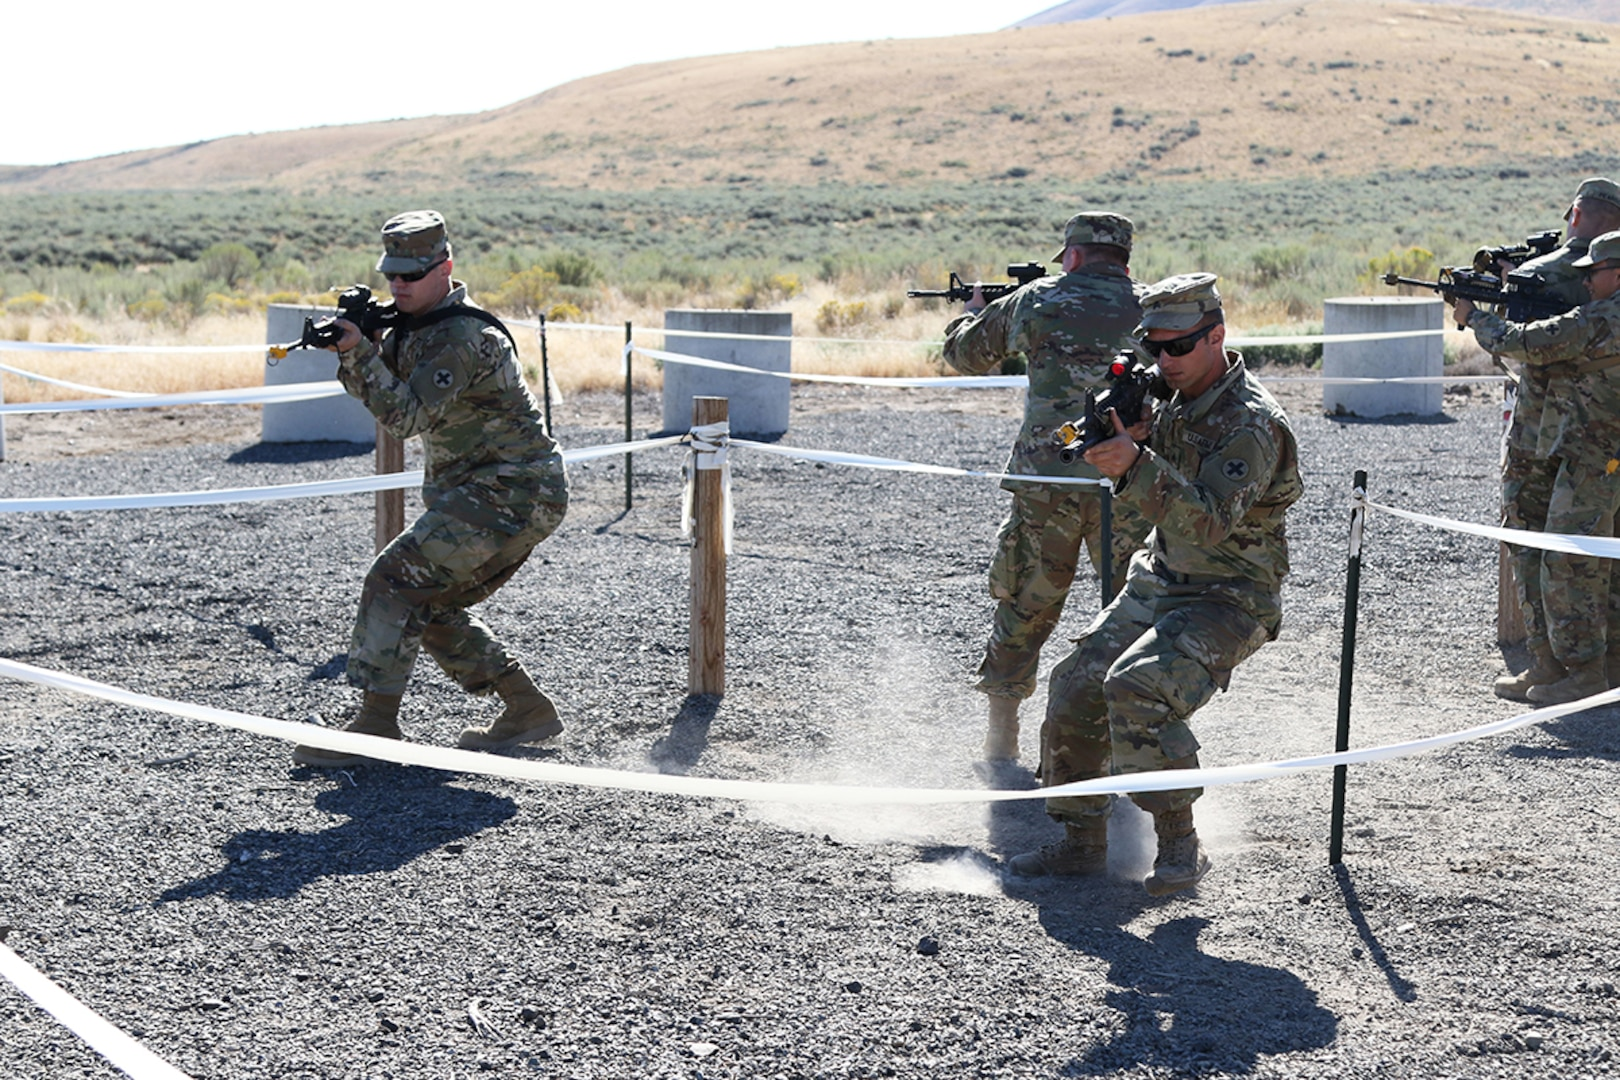 Infantrymen from D Co, 2nd Battalion, 130th Infantry Regiment, Illinois Army National Guard, rehearse room clearance drills as part of Rising Thunder 19 at the Yakima Training Center in Yakima, Washington, Sept. 1, 2019